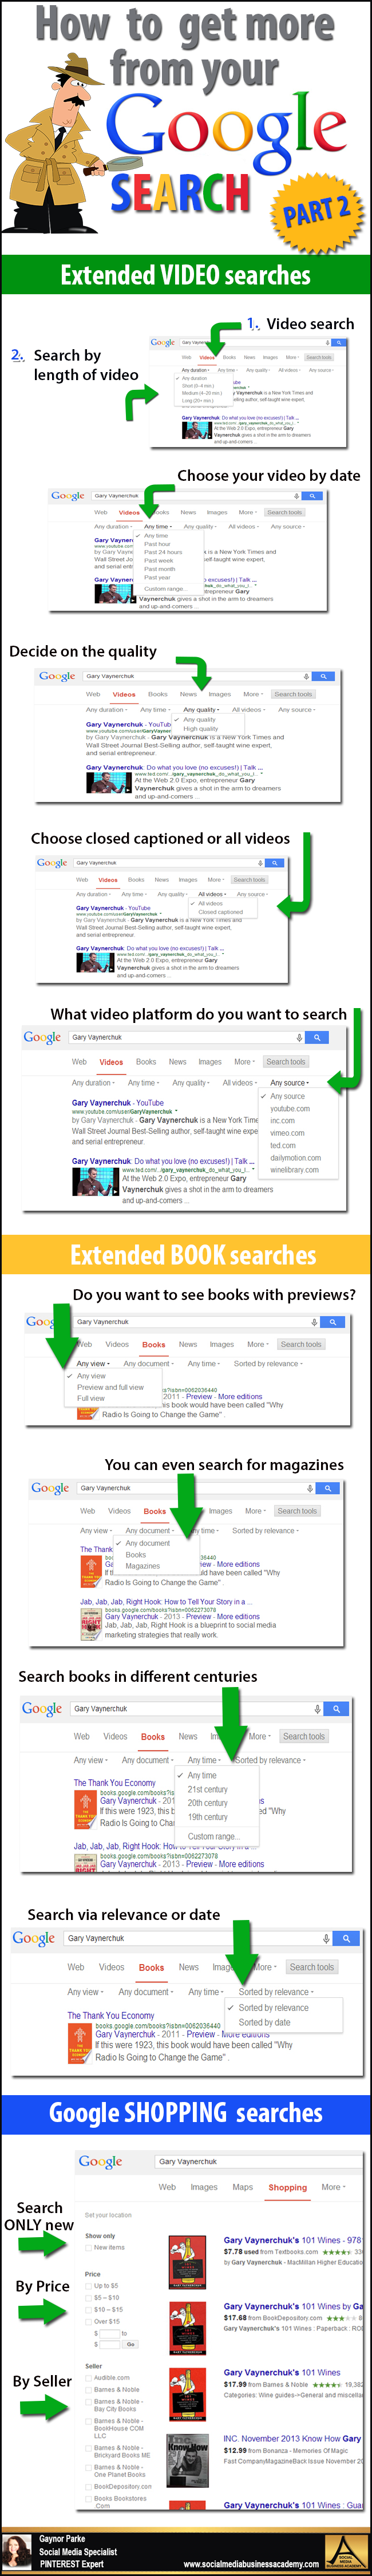 cbca6e0647cd2bc95fcbff106300a90d - How To Get On Google Page 1 In An Hour